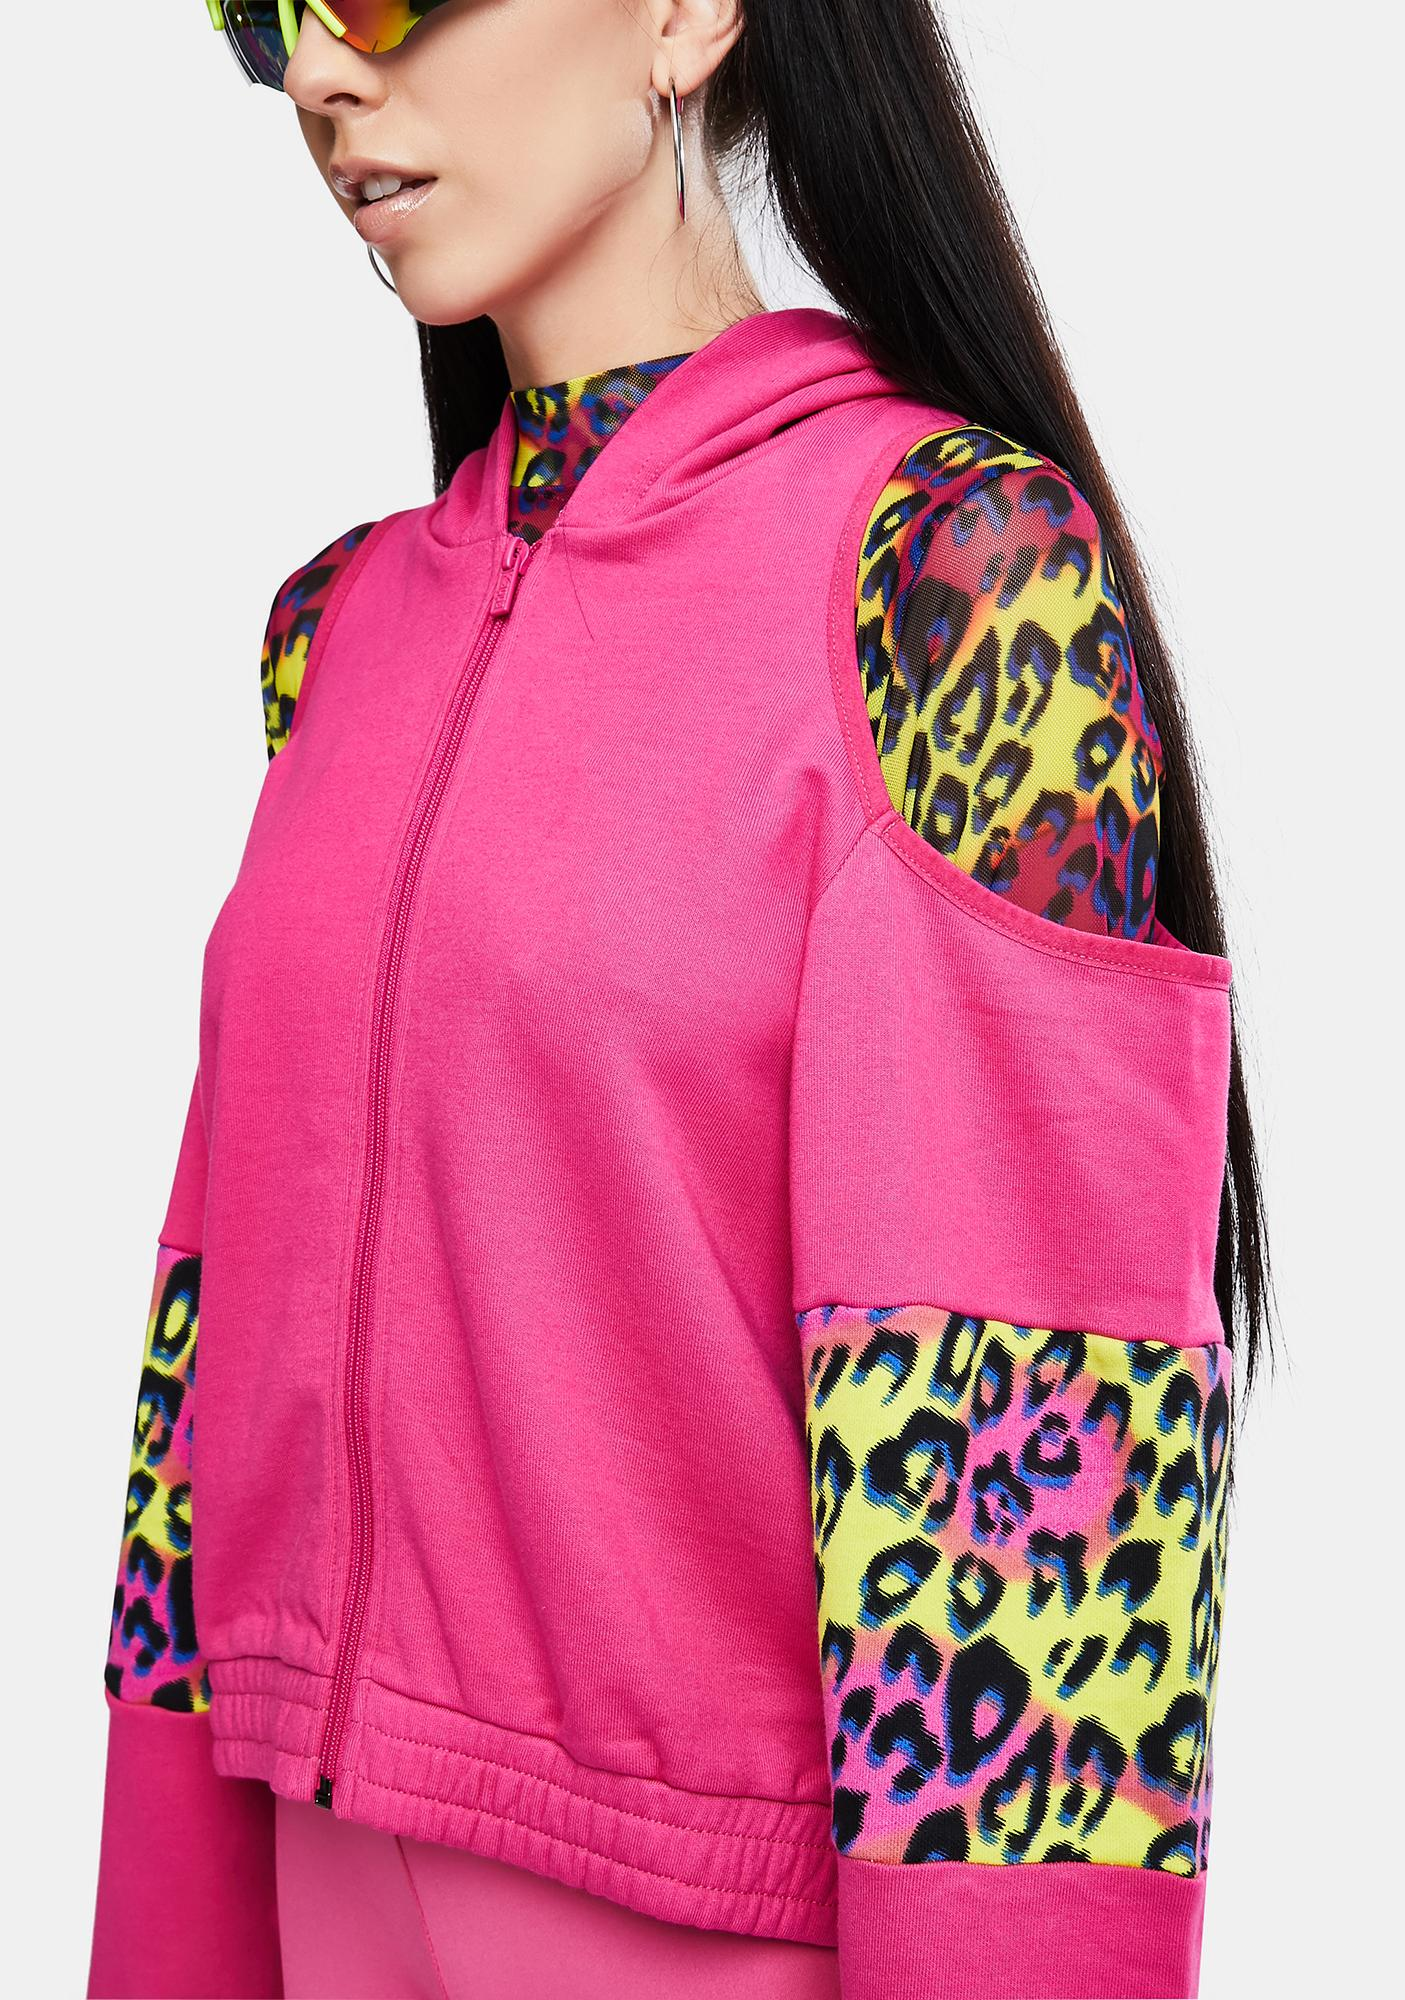 Kappa Fuchsia Authentic Delia Graphik 2 Zip Up Hoodie